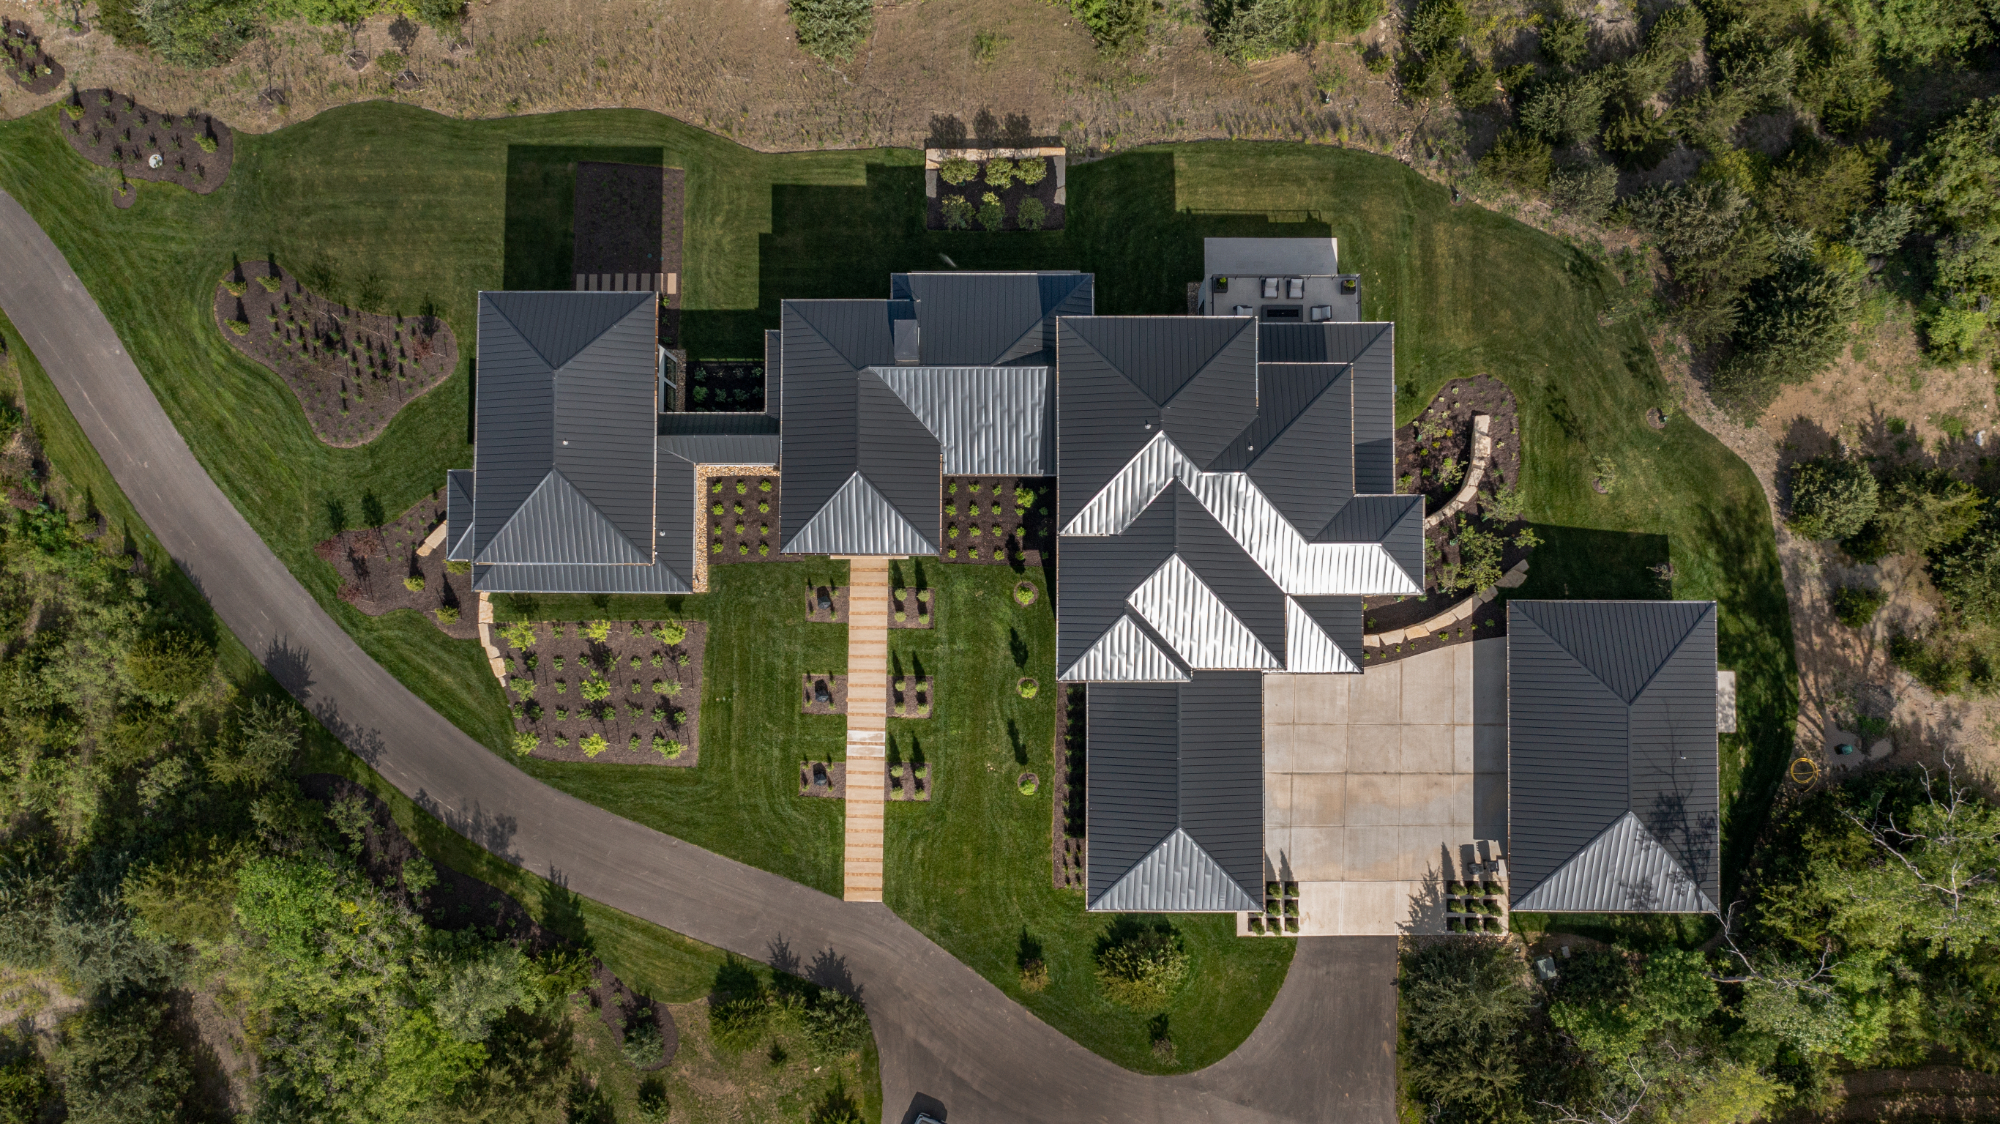 Aerial view of a modern home